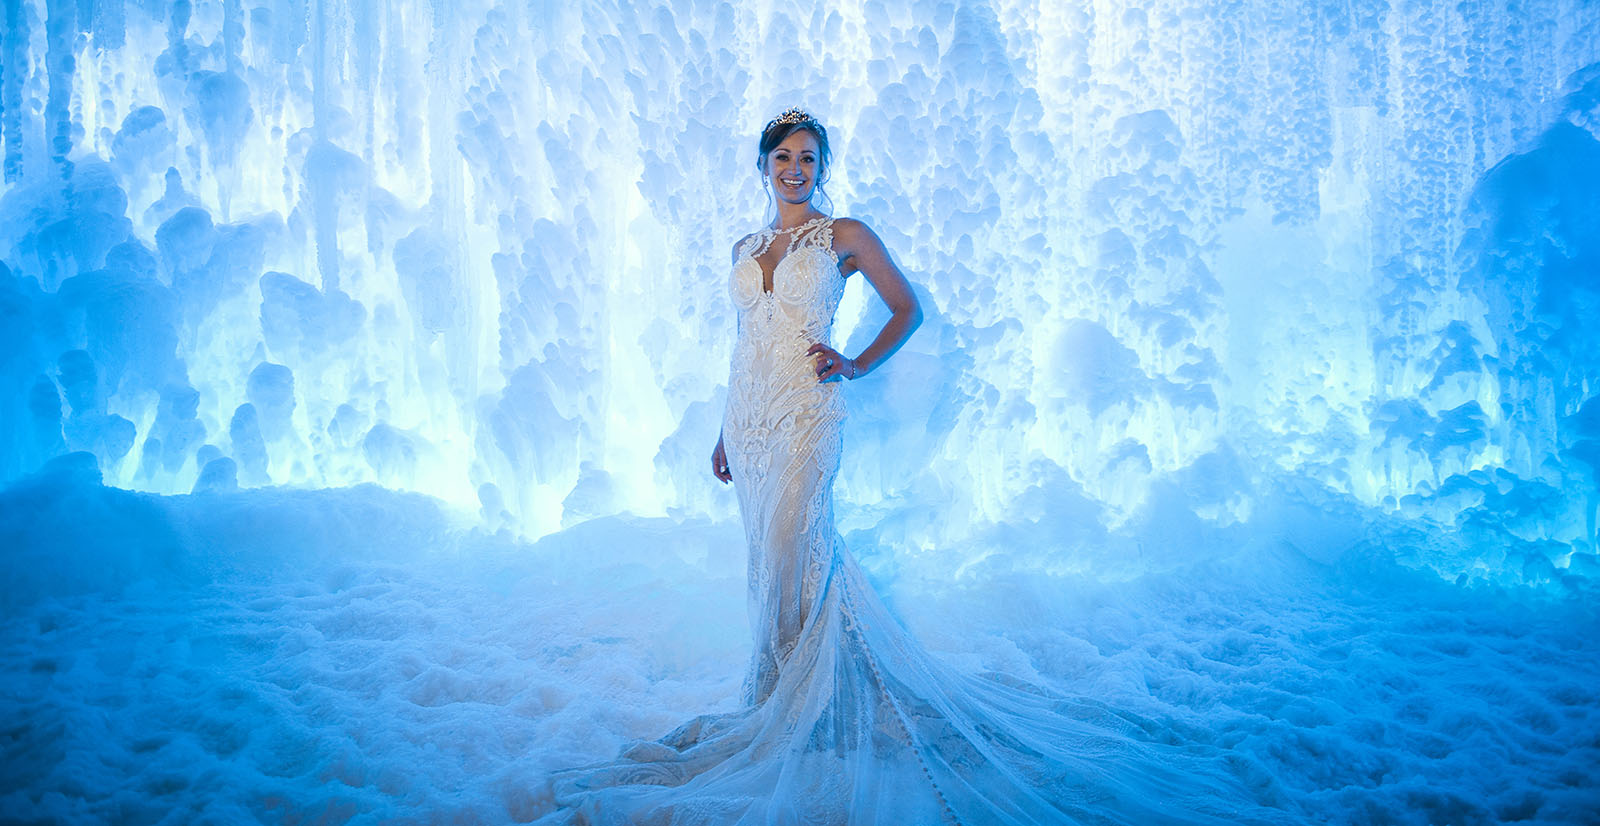 Beautiful bride in wedding gown in the Ice Castles at night, in Dillon, CO